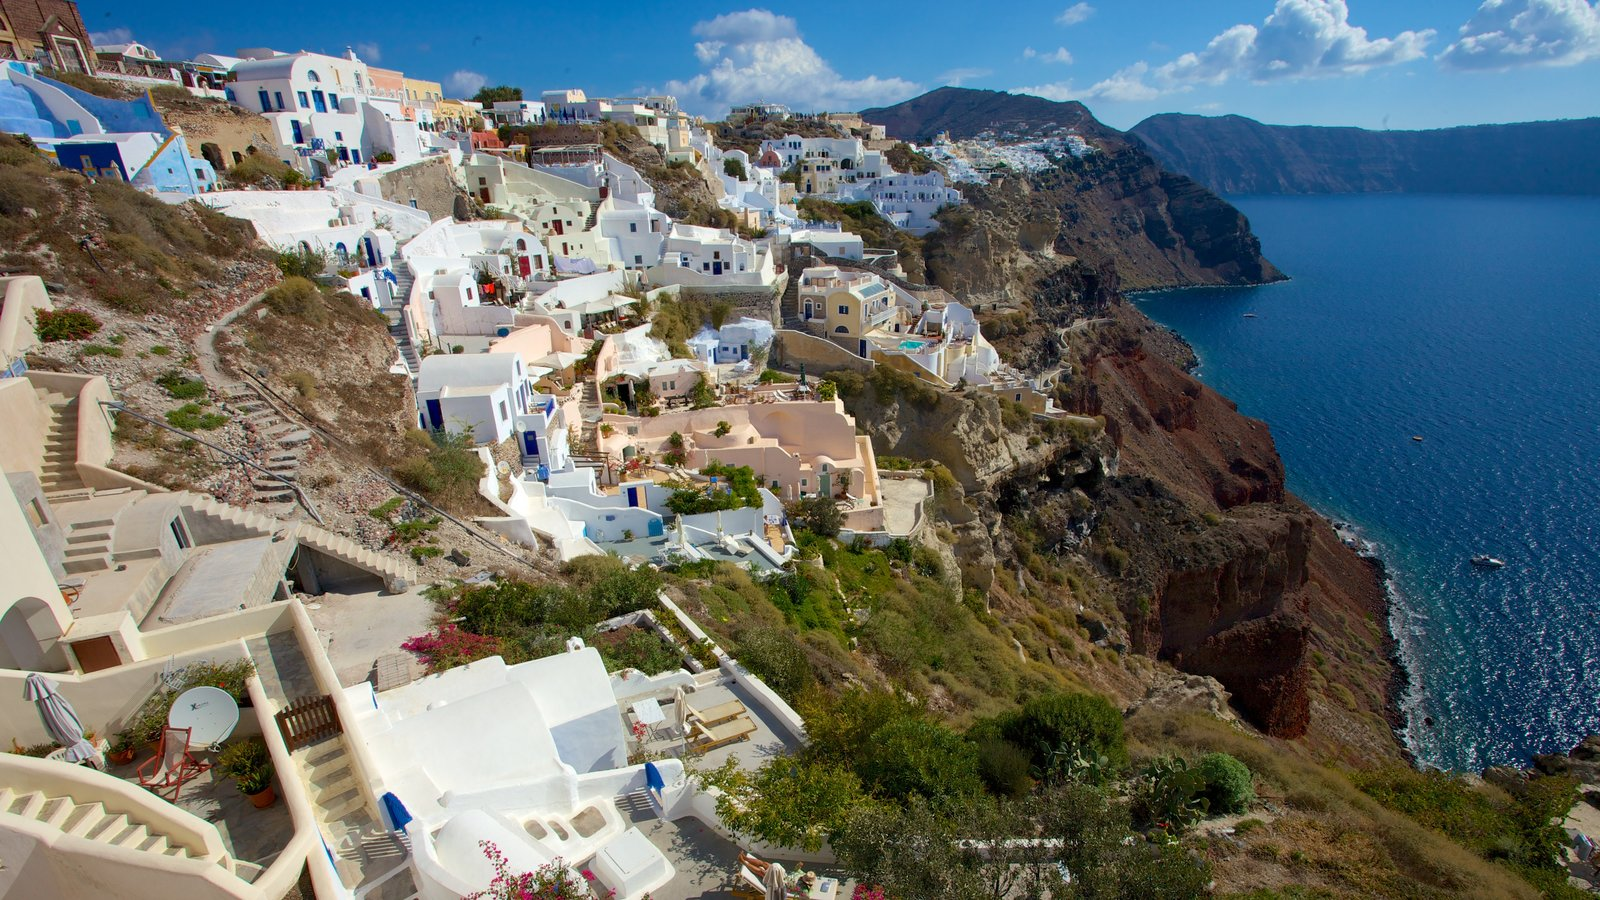 Oia showing a coastal town and landscape views